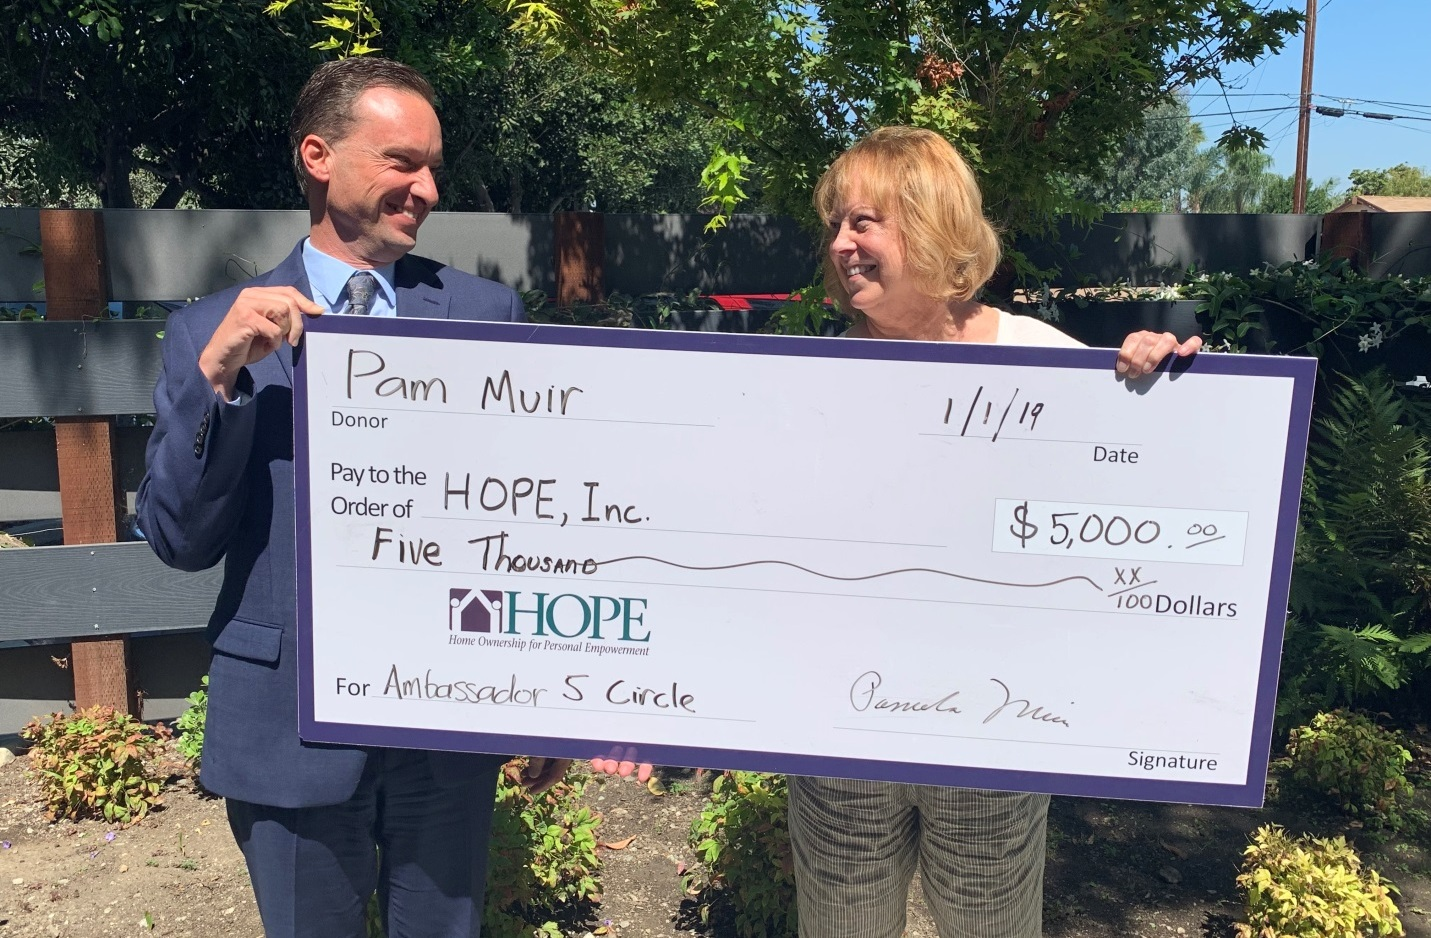 HOPE Executive Director Kristin Martin receives a generous $5,000 donation from Pam Muir as she officially joins the Ambassador 5 Circle. (HOPE)